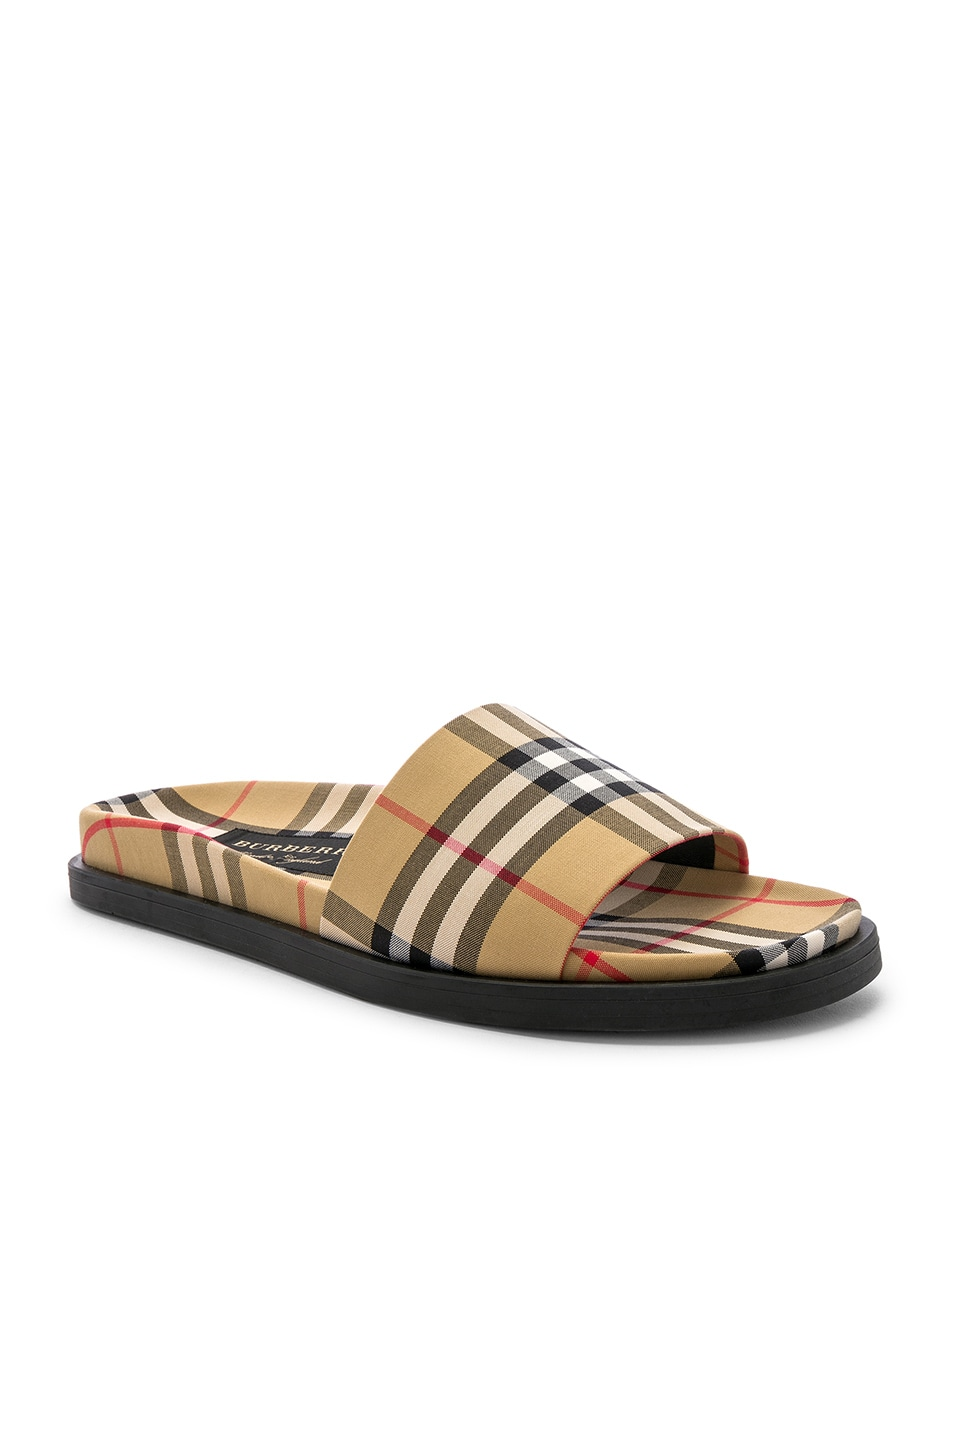 Image 1 of Burberry Sandal in Antique Yellow